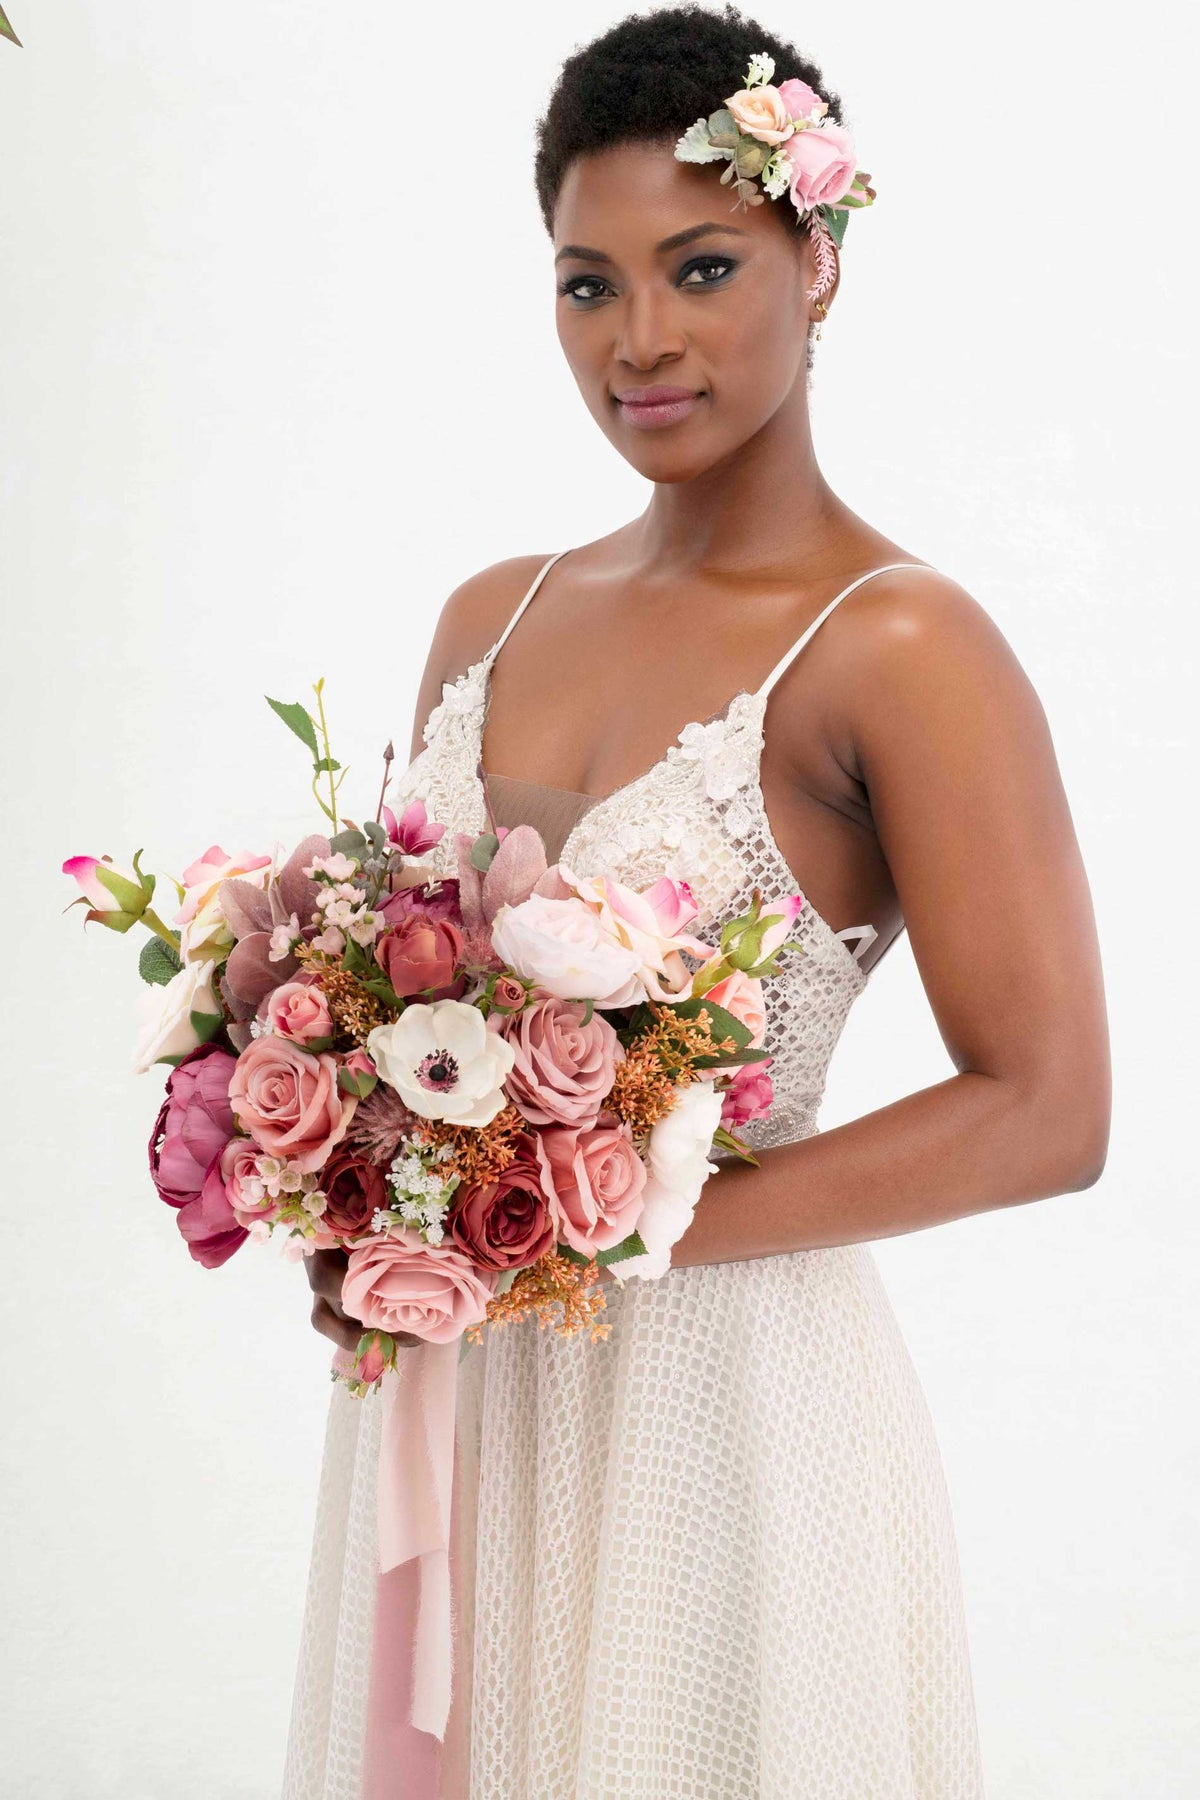 Bridal Bouquet - Romantic Dusty Pink